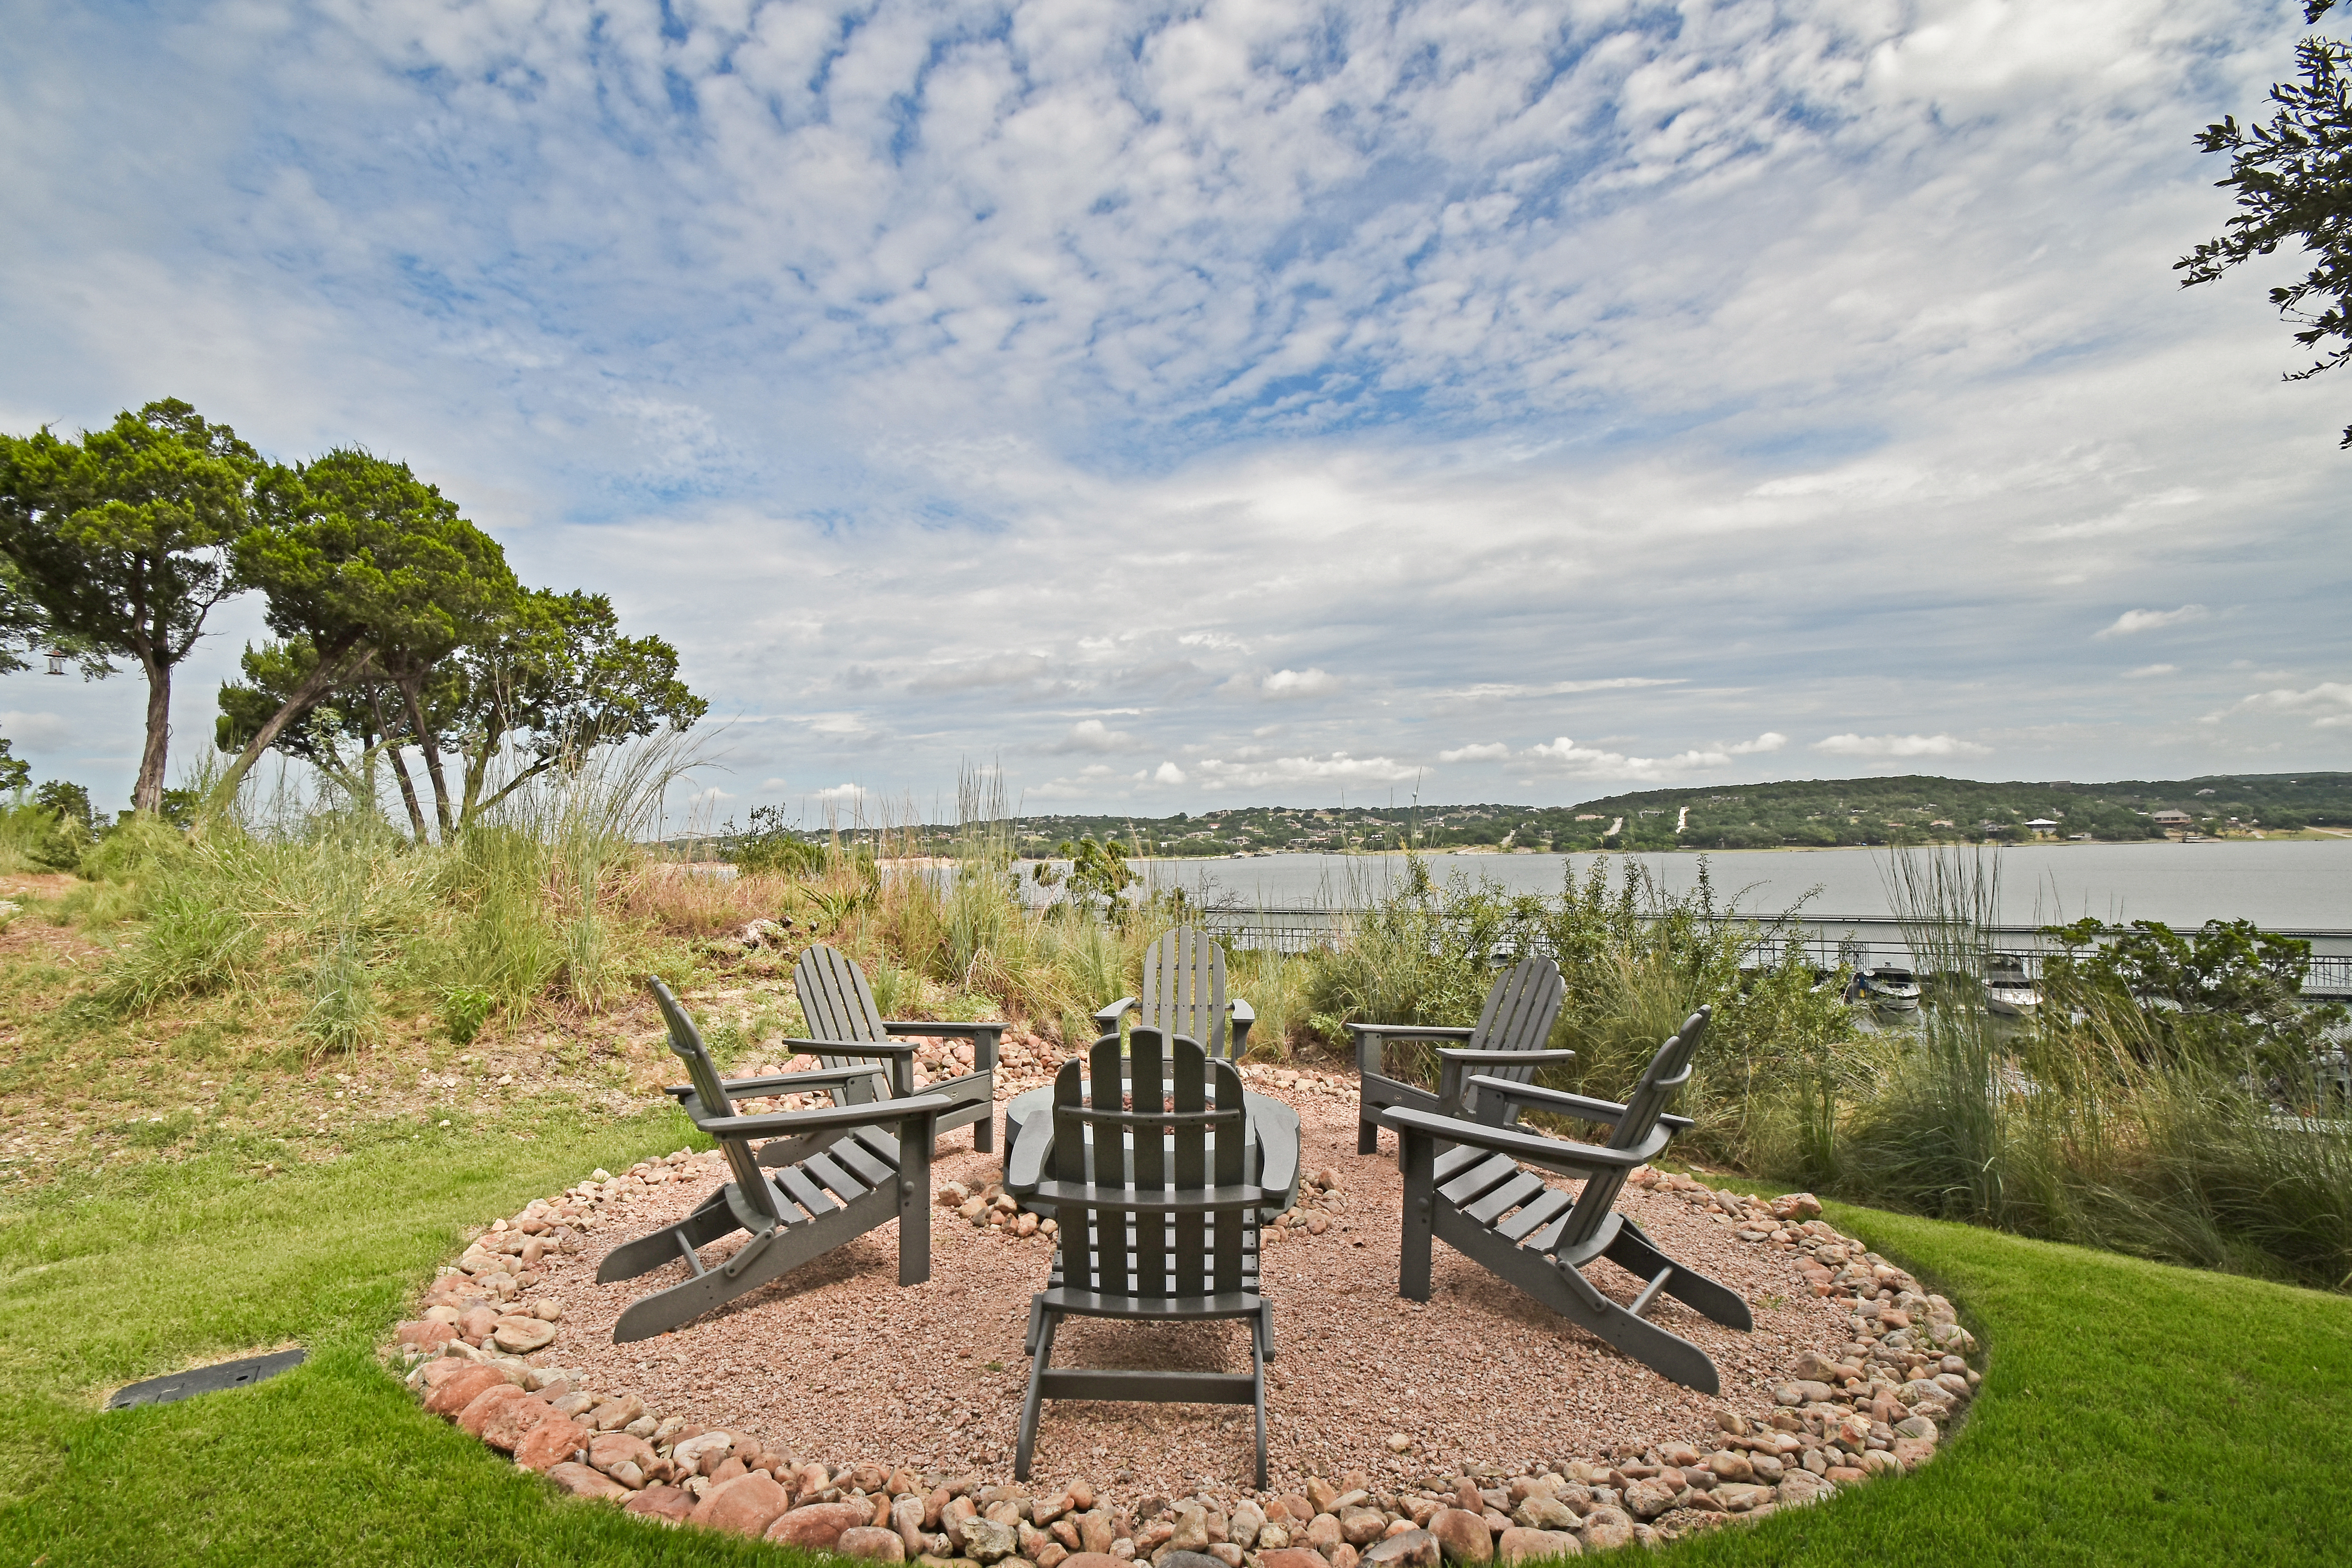 Spicewood TX Vacation Rental Welcome to Lake